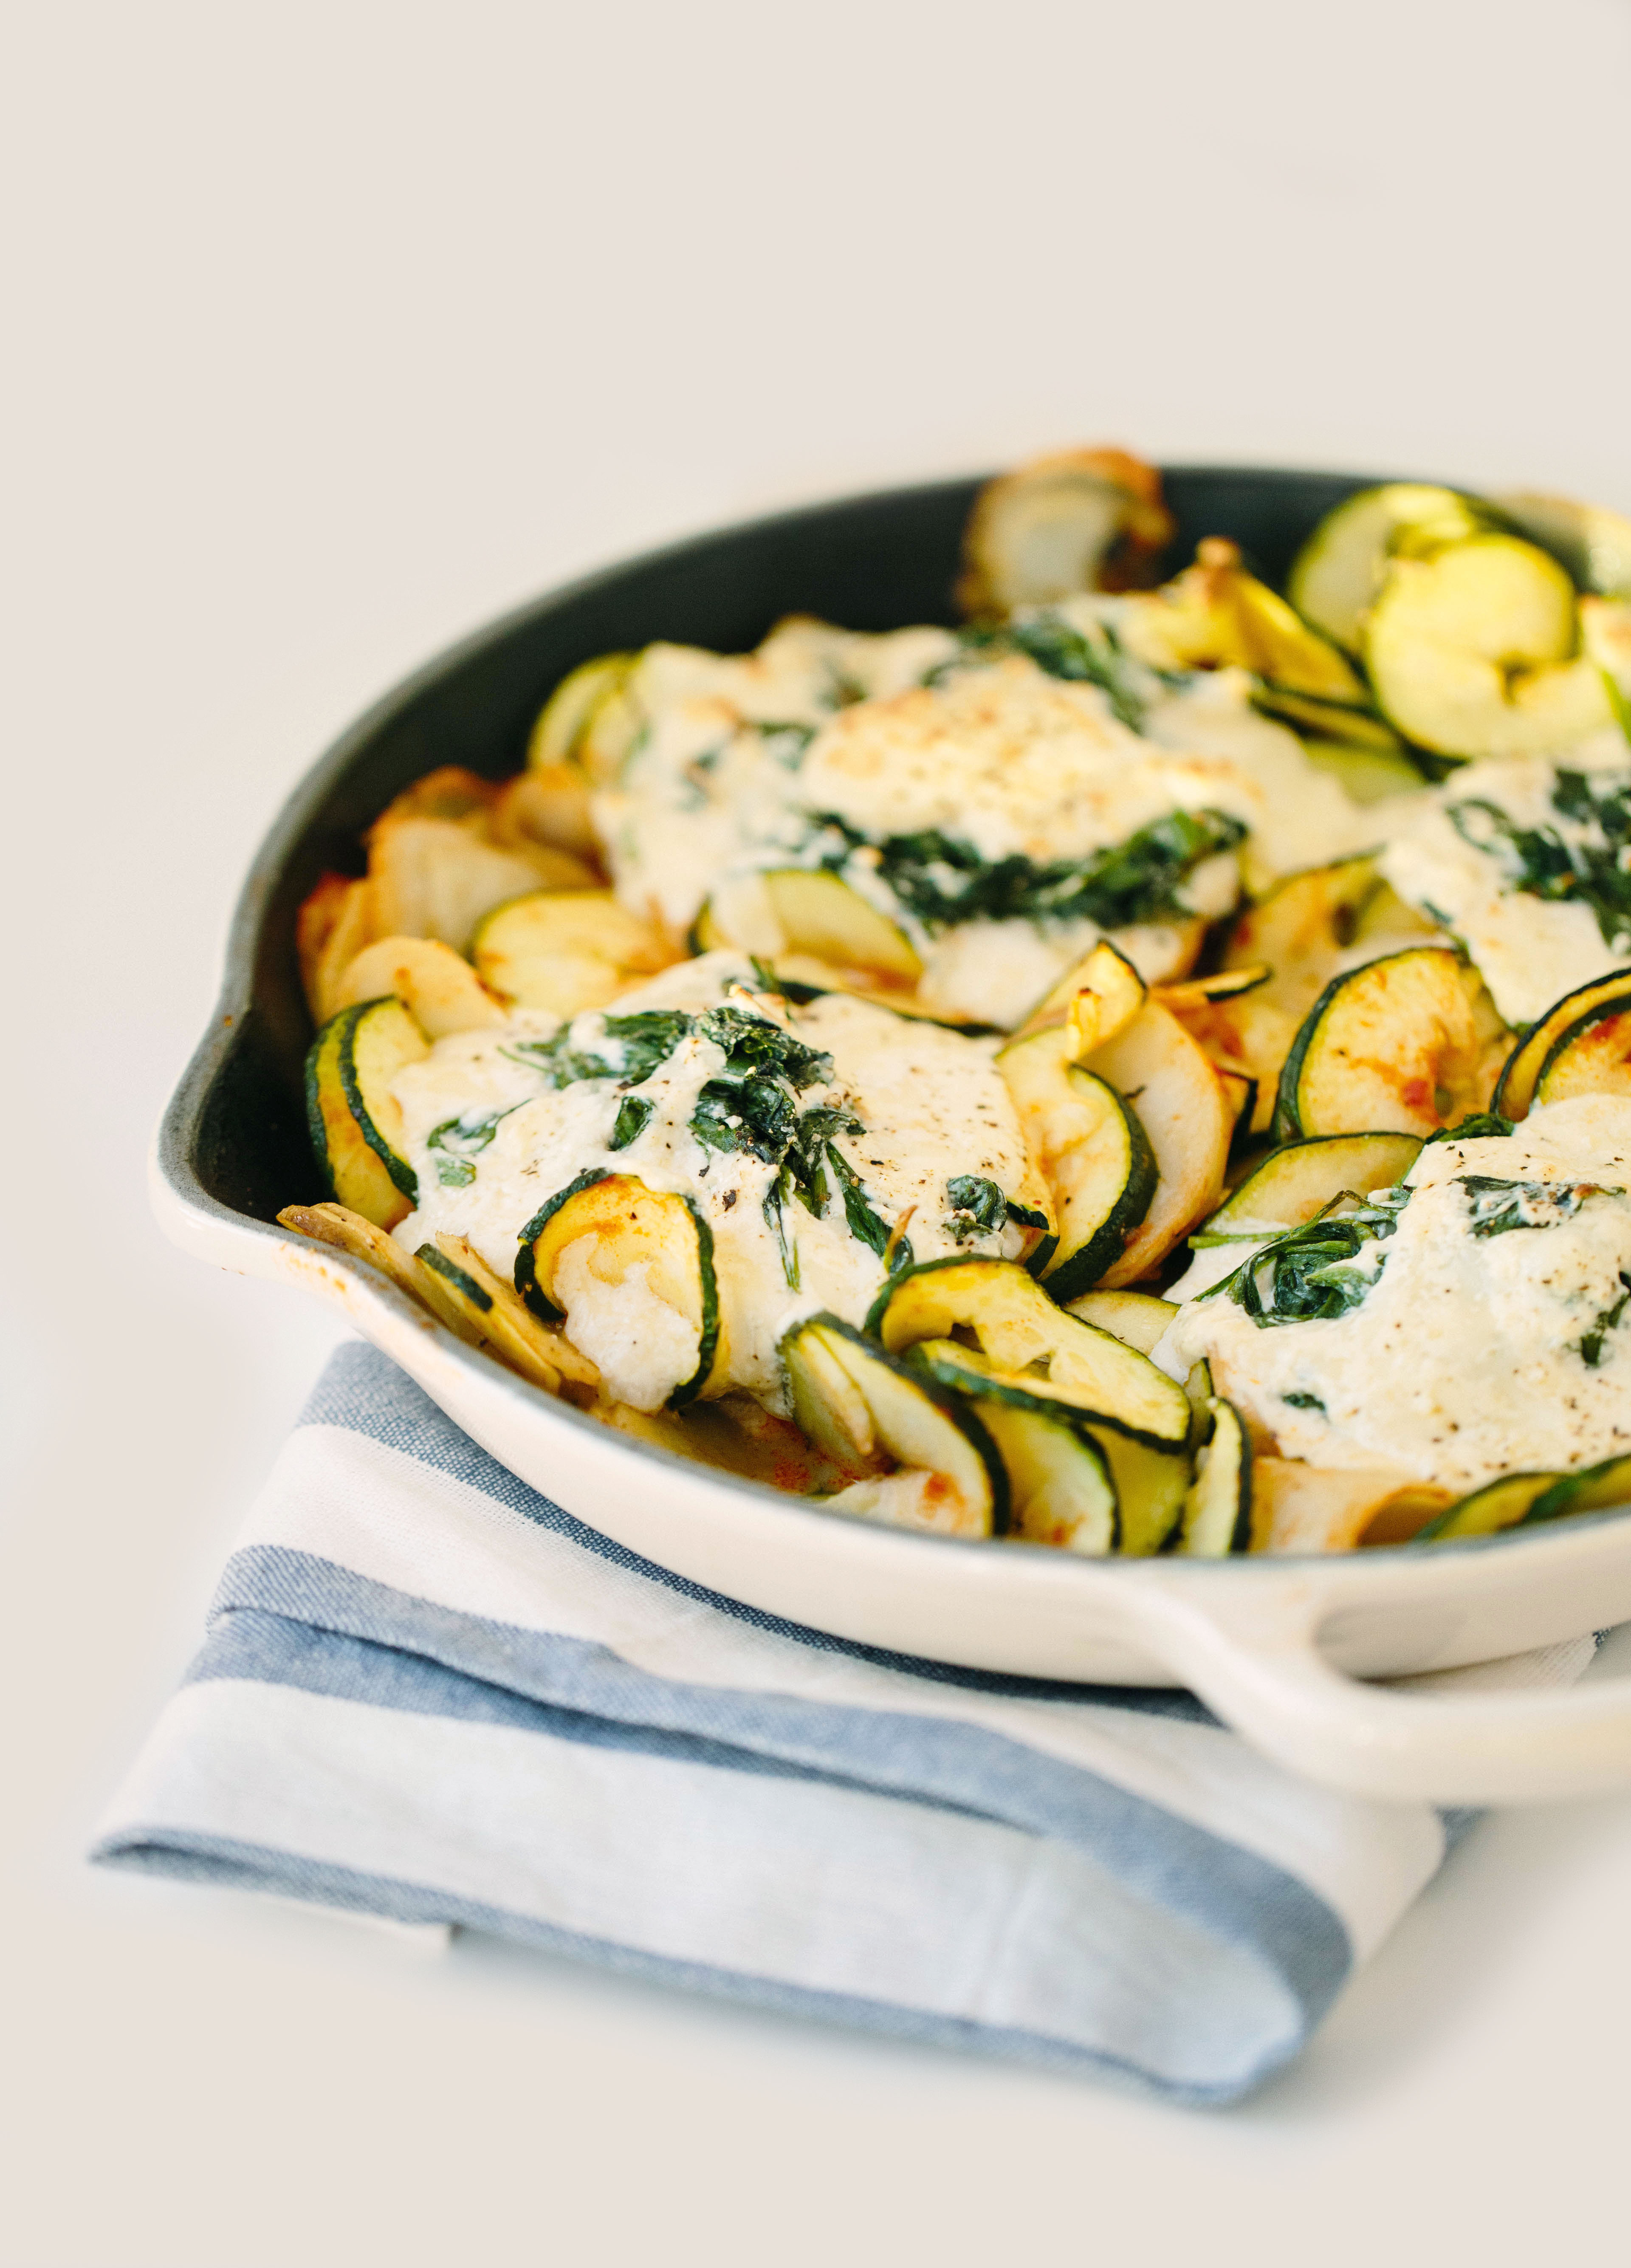 Deconstructed Spinach Manicotti with Spiralized Potatoes and Zucchini